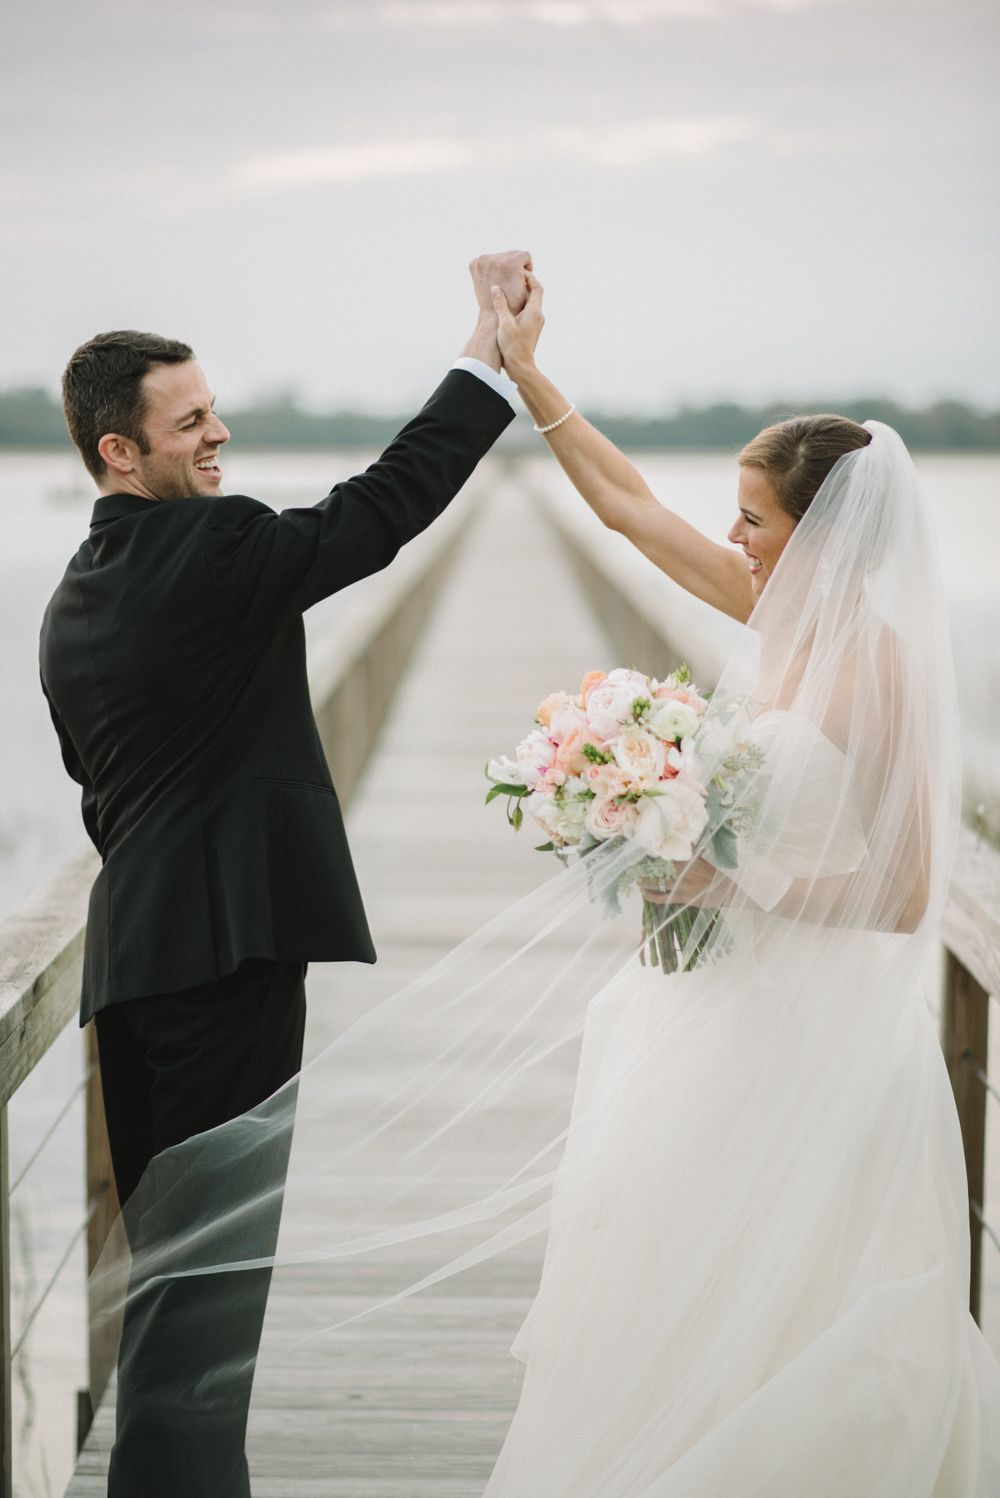 Incredible Sunset Wedding Ceremony & Black Tie Dance Party